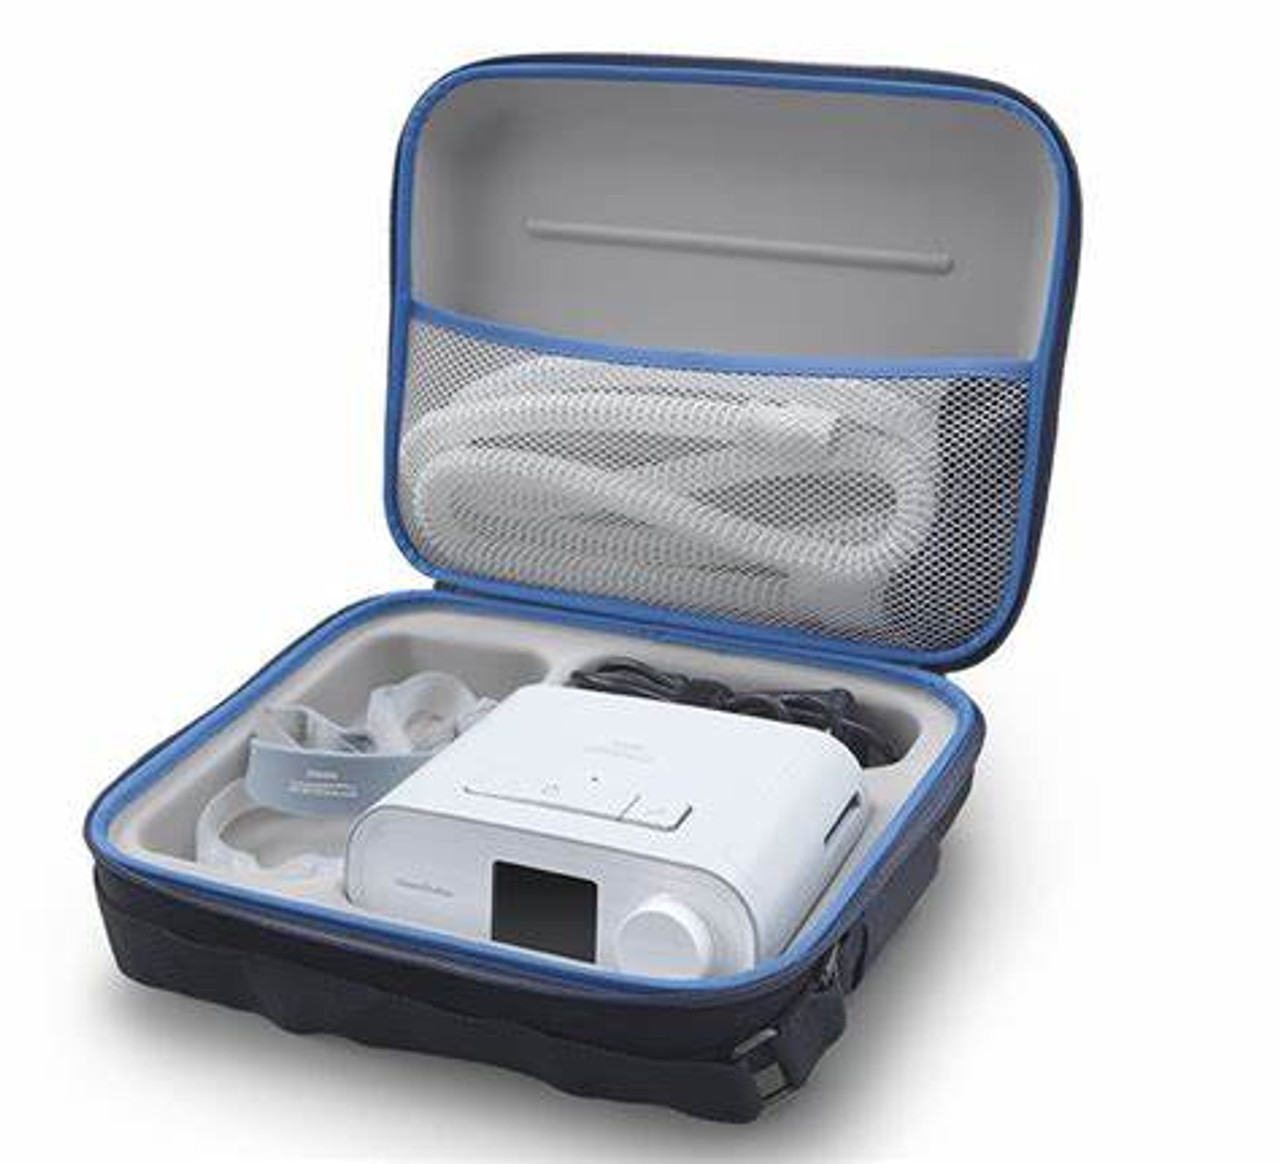 Philips Respironics DreamStation Travel Case